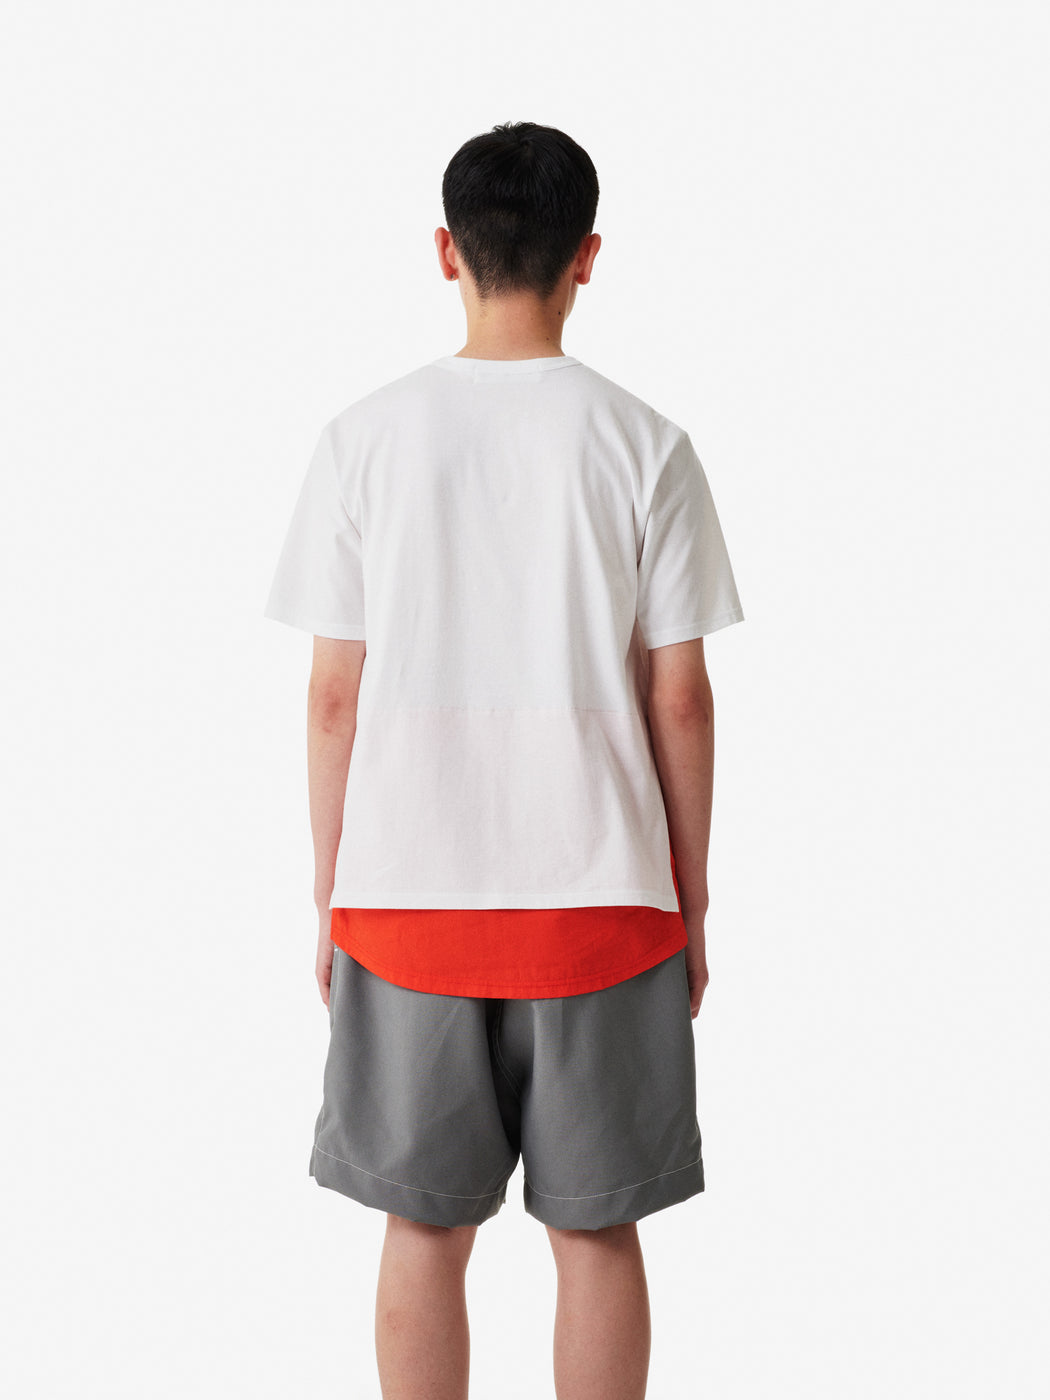 Shirt Fabrics Short Sleeve Layerd T-shirt